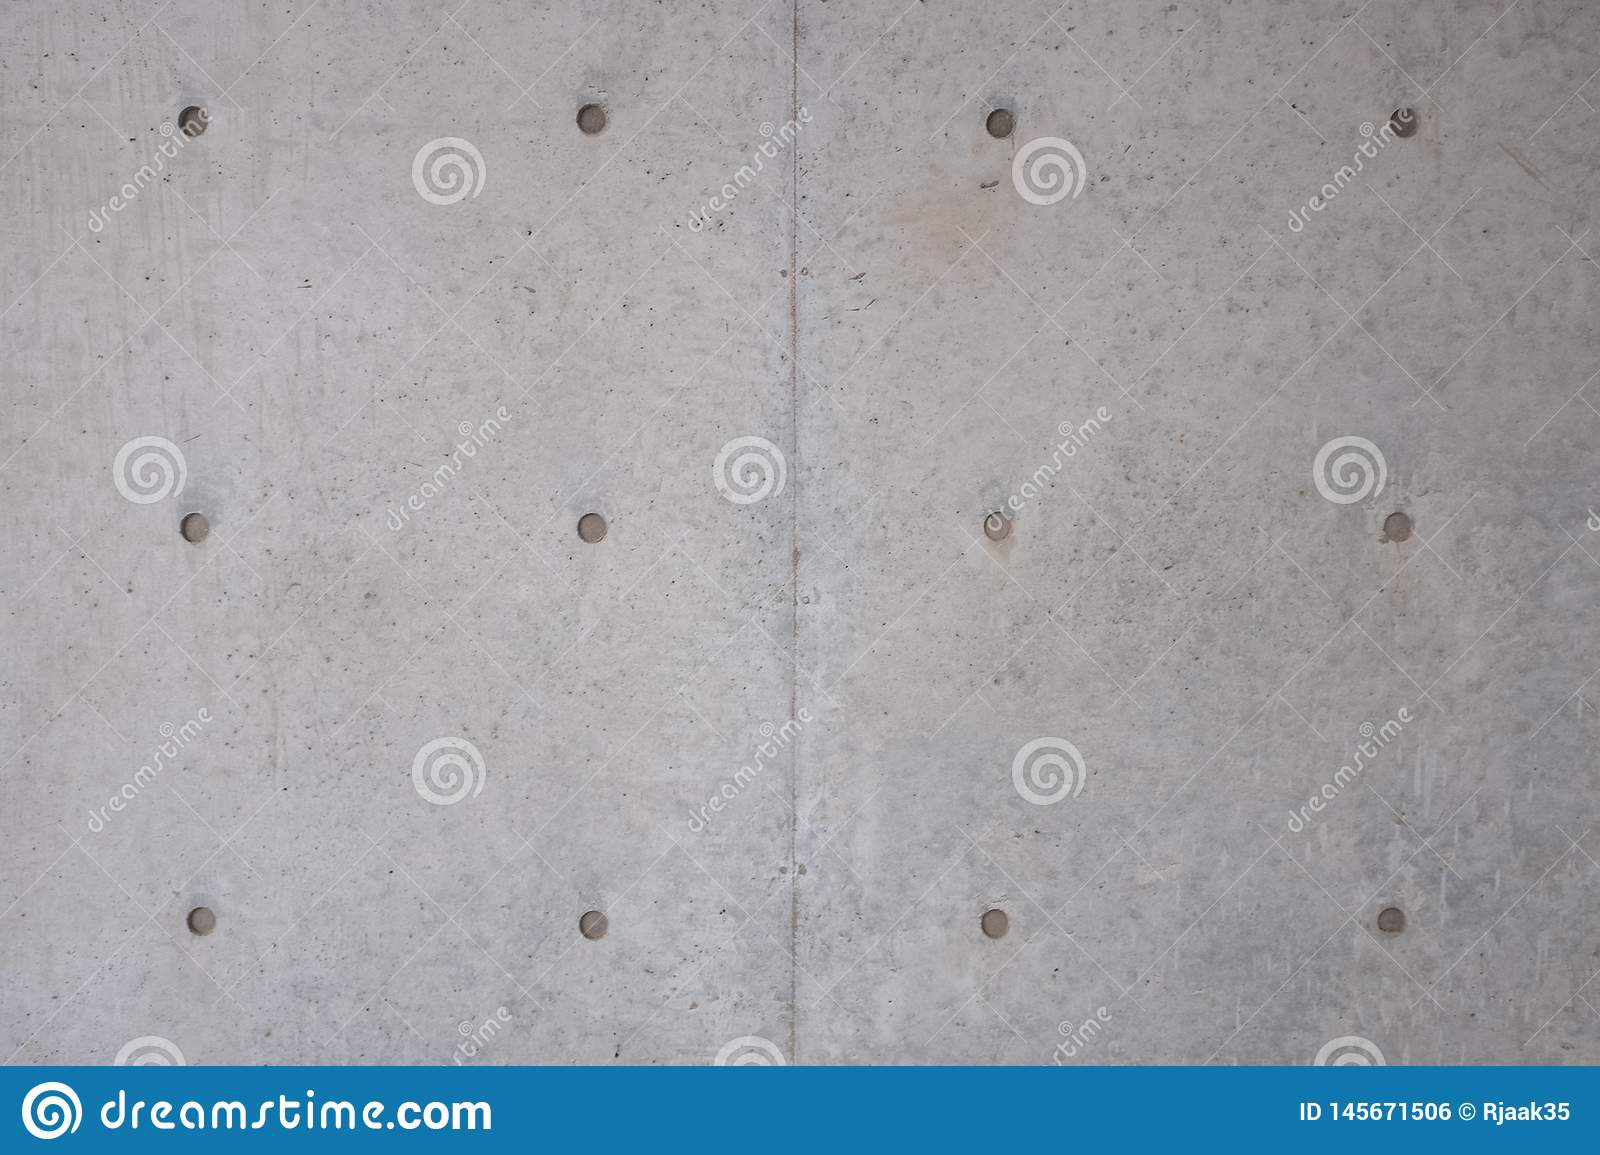 Textured and aligned exposed concrete.